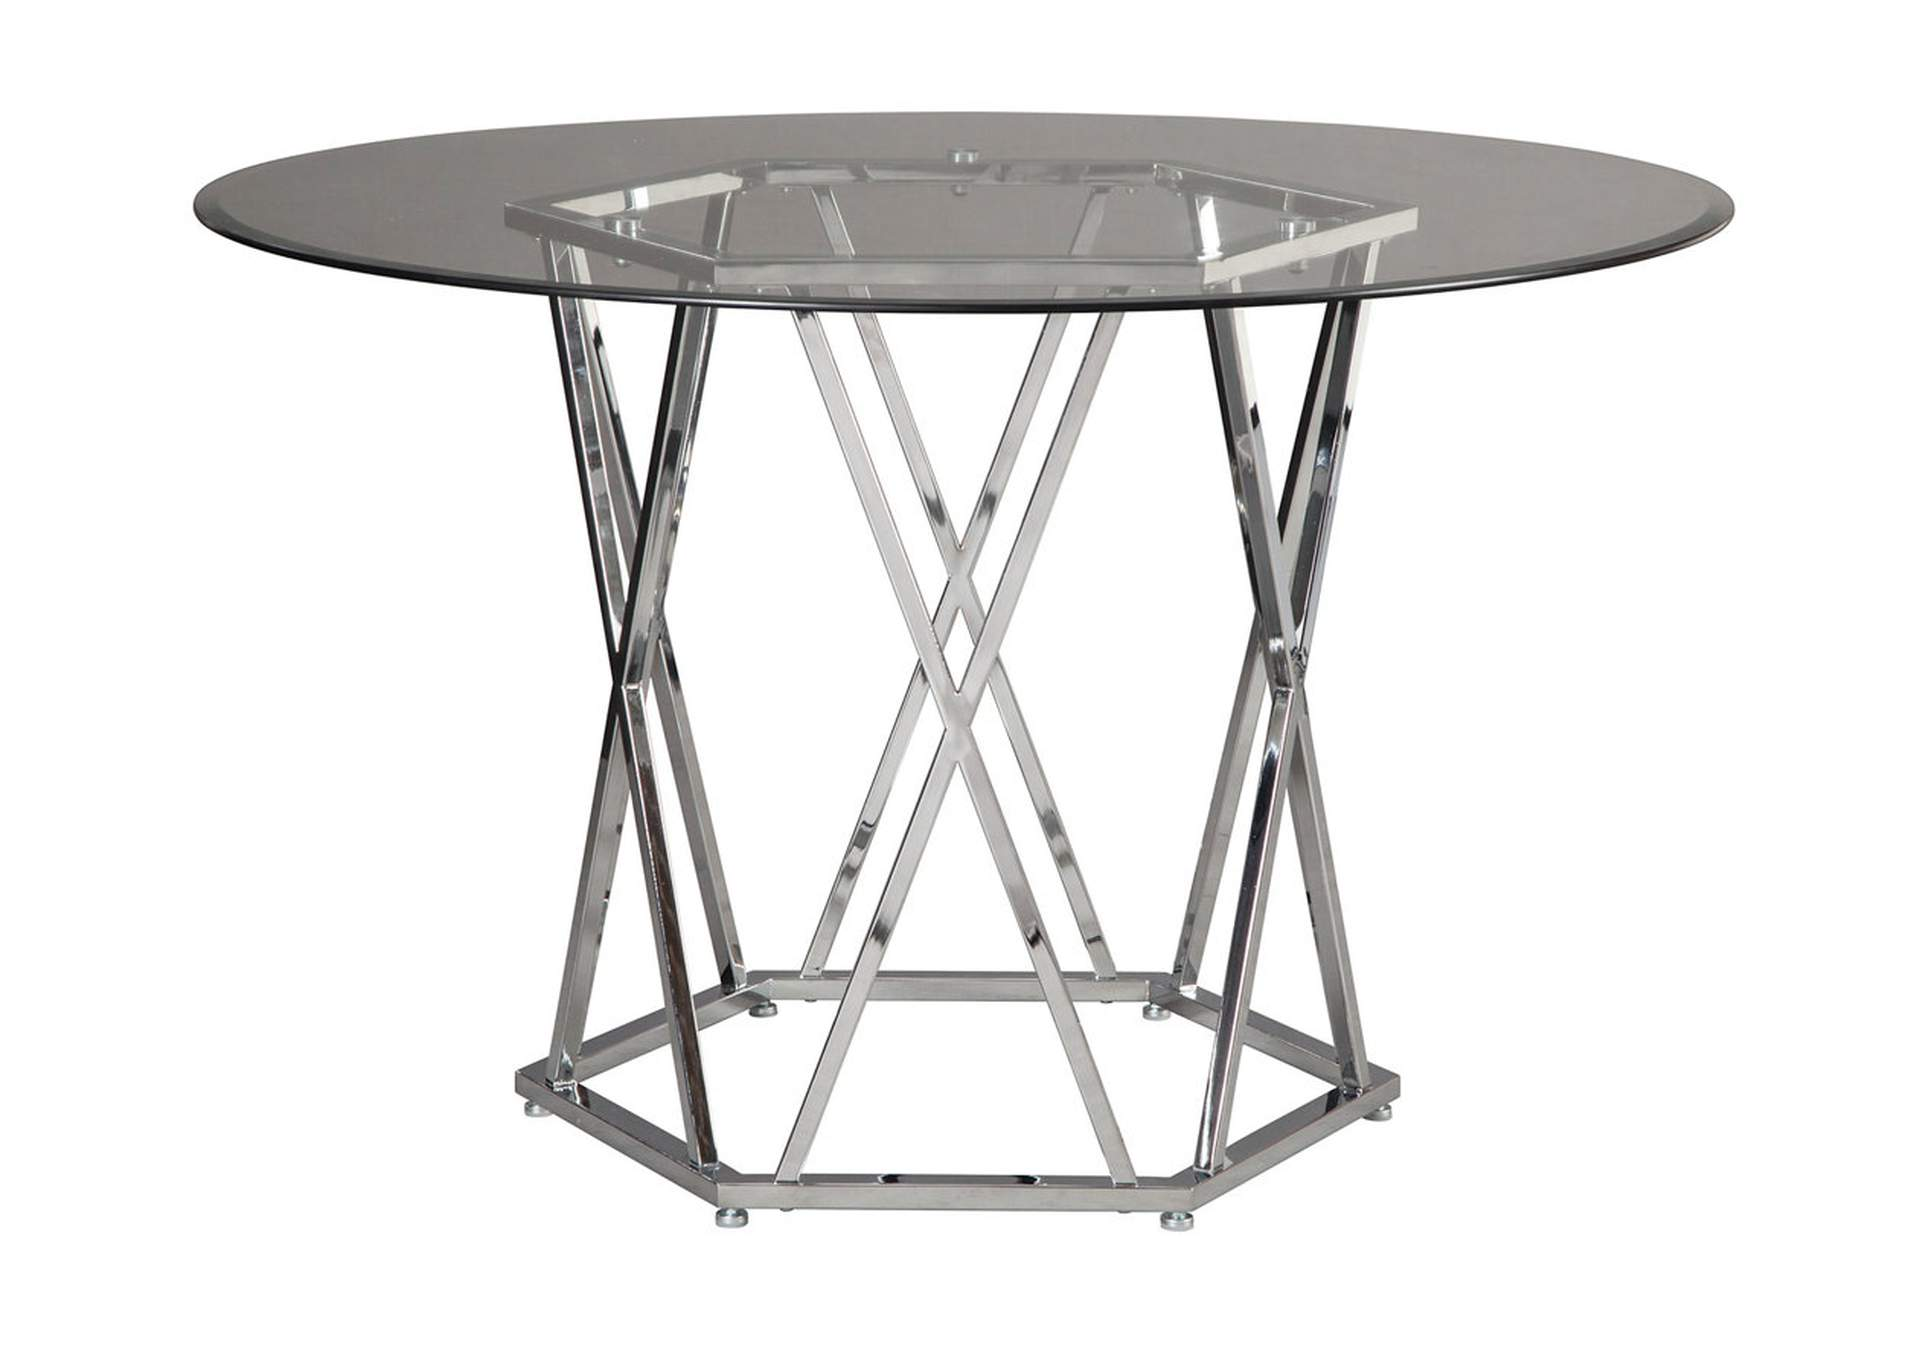 Madanere Dining Room Table,Signature Design By Ashley